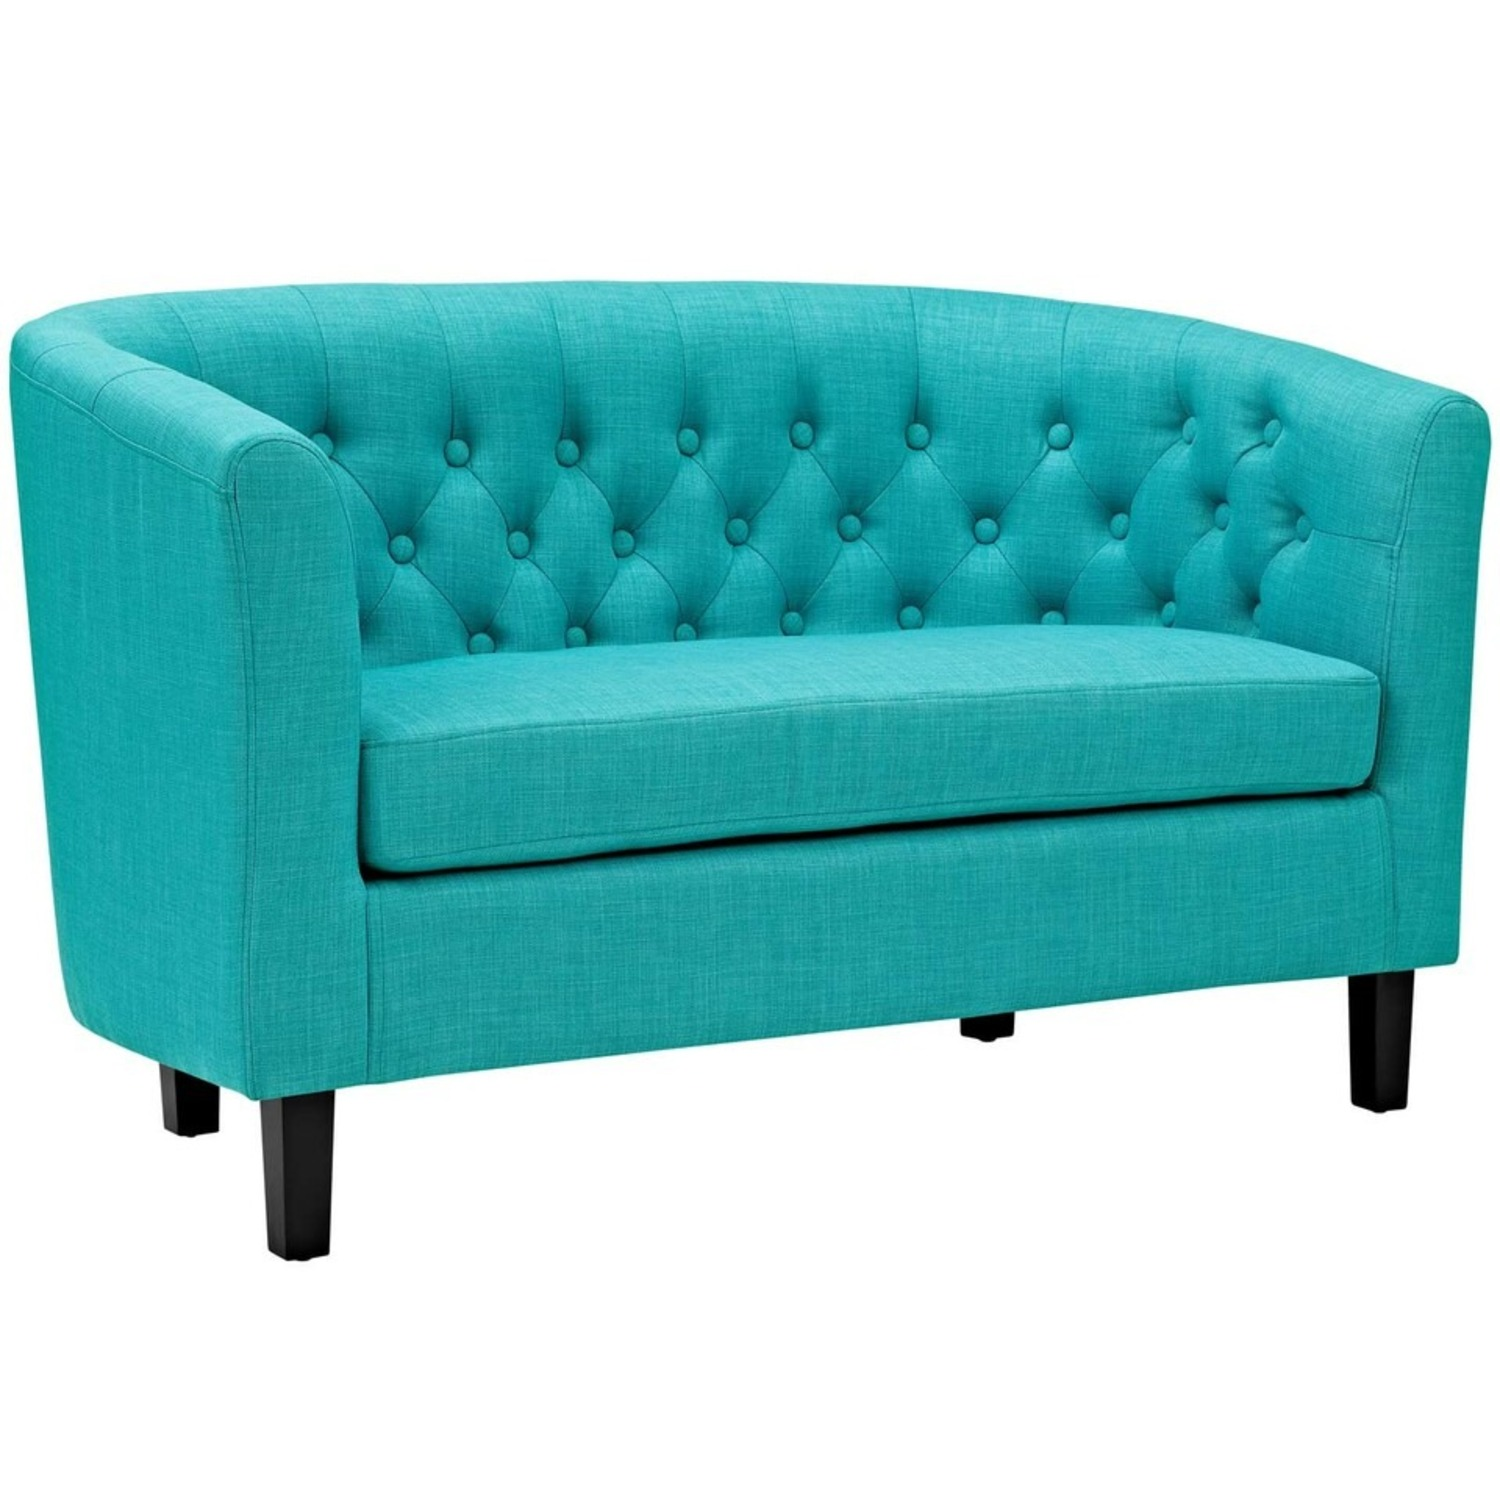 Modern Loveseat In Pure Water Fabric Upholstery - image-0